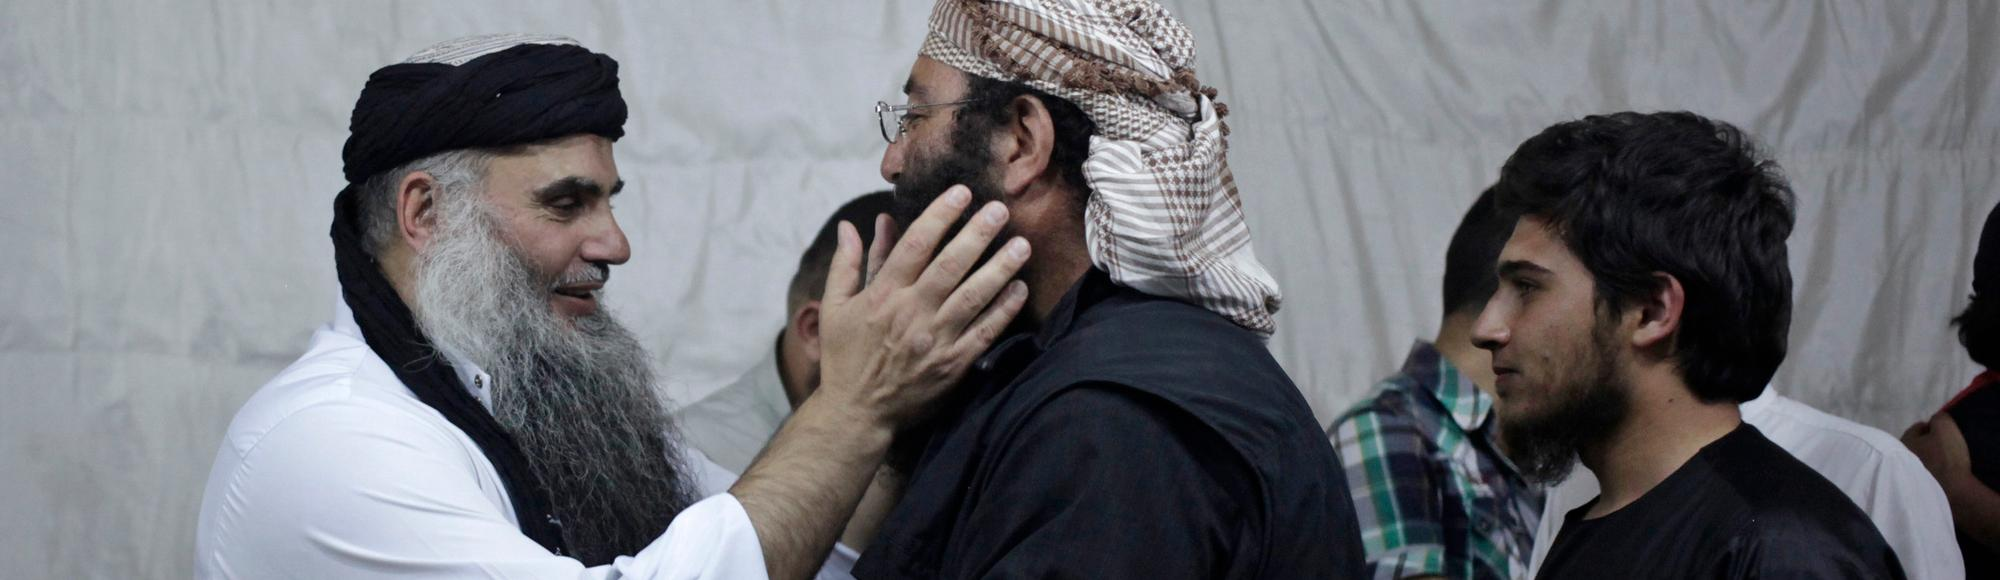 Al Qaeda Seems to Want to Be Best Friends with the Islamic State Again